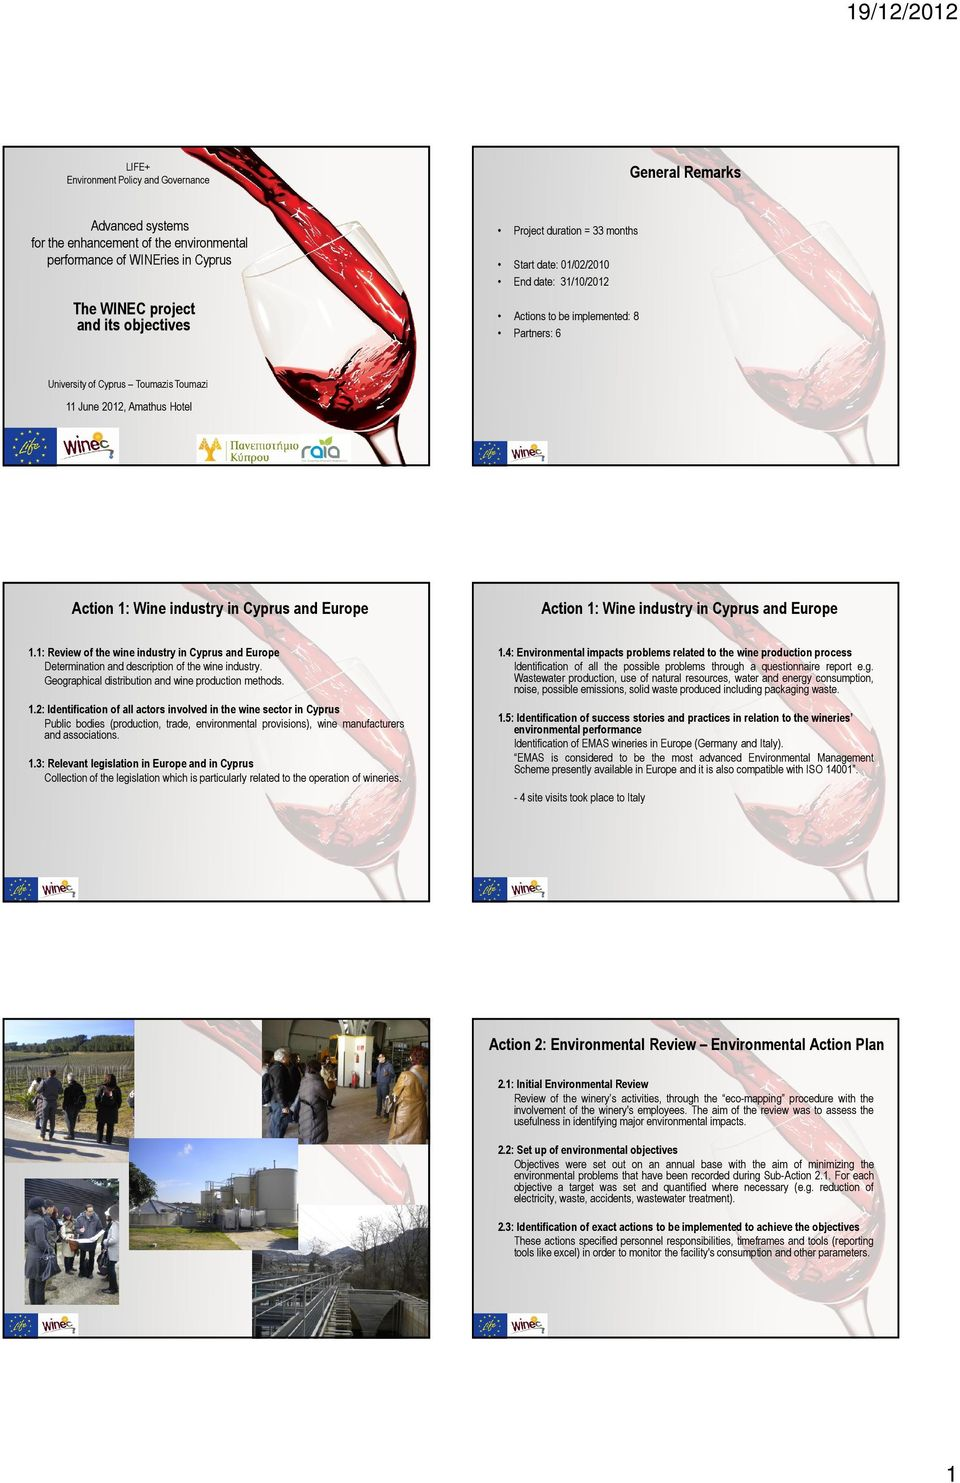 industry in Cyprus and Europe Action 1: Wine industry in Cyprus and Europe 1.1: Review of the wine industry in Cyprus and Europe Determination and description of the wine industry.